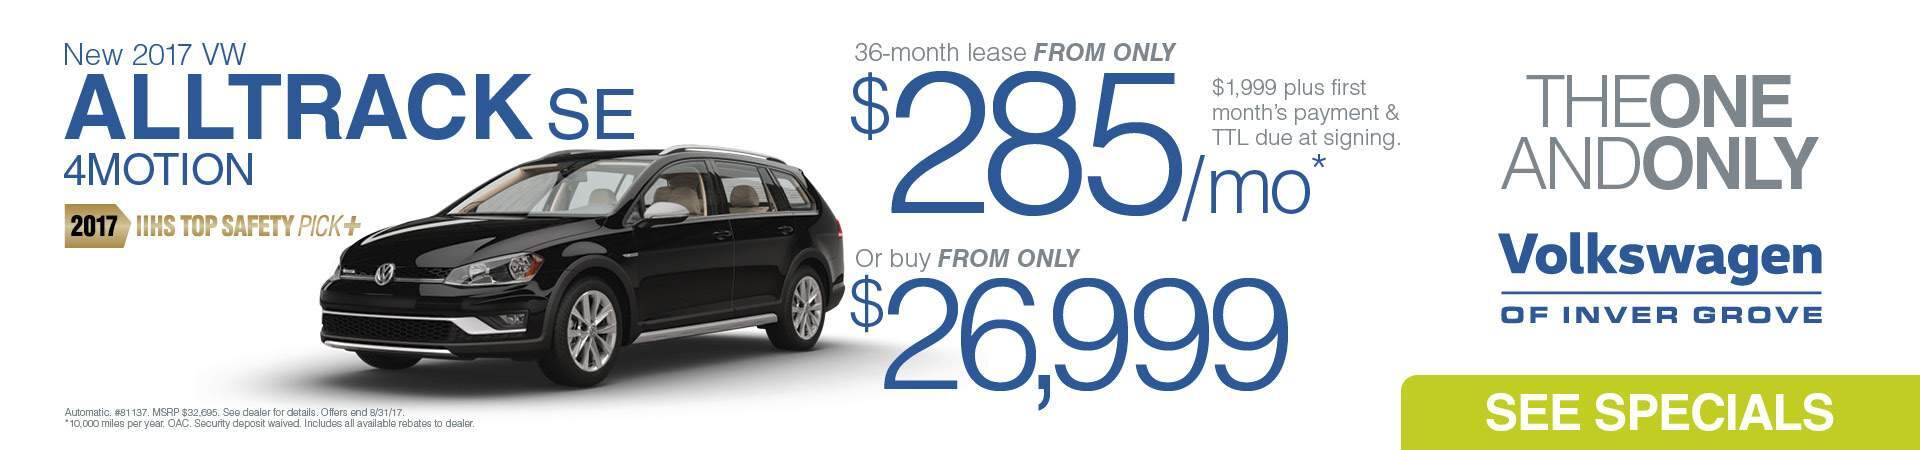 Volkswagen Inver Grove Heights Used Cars Inver Grove